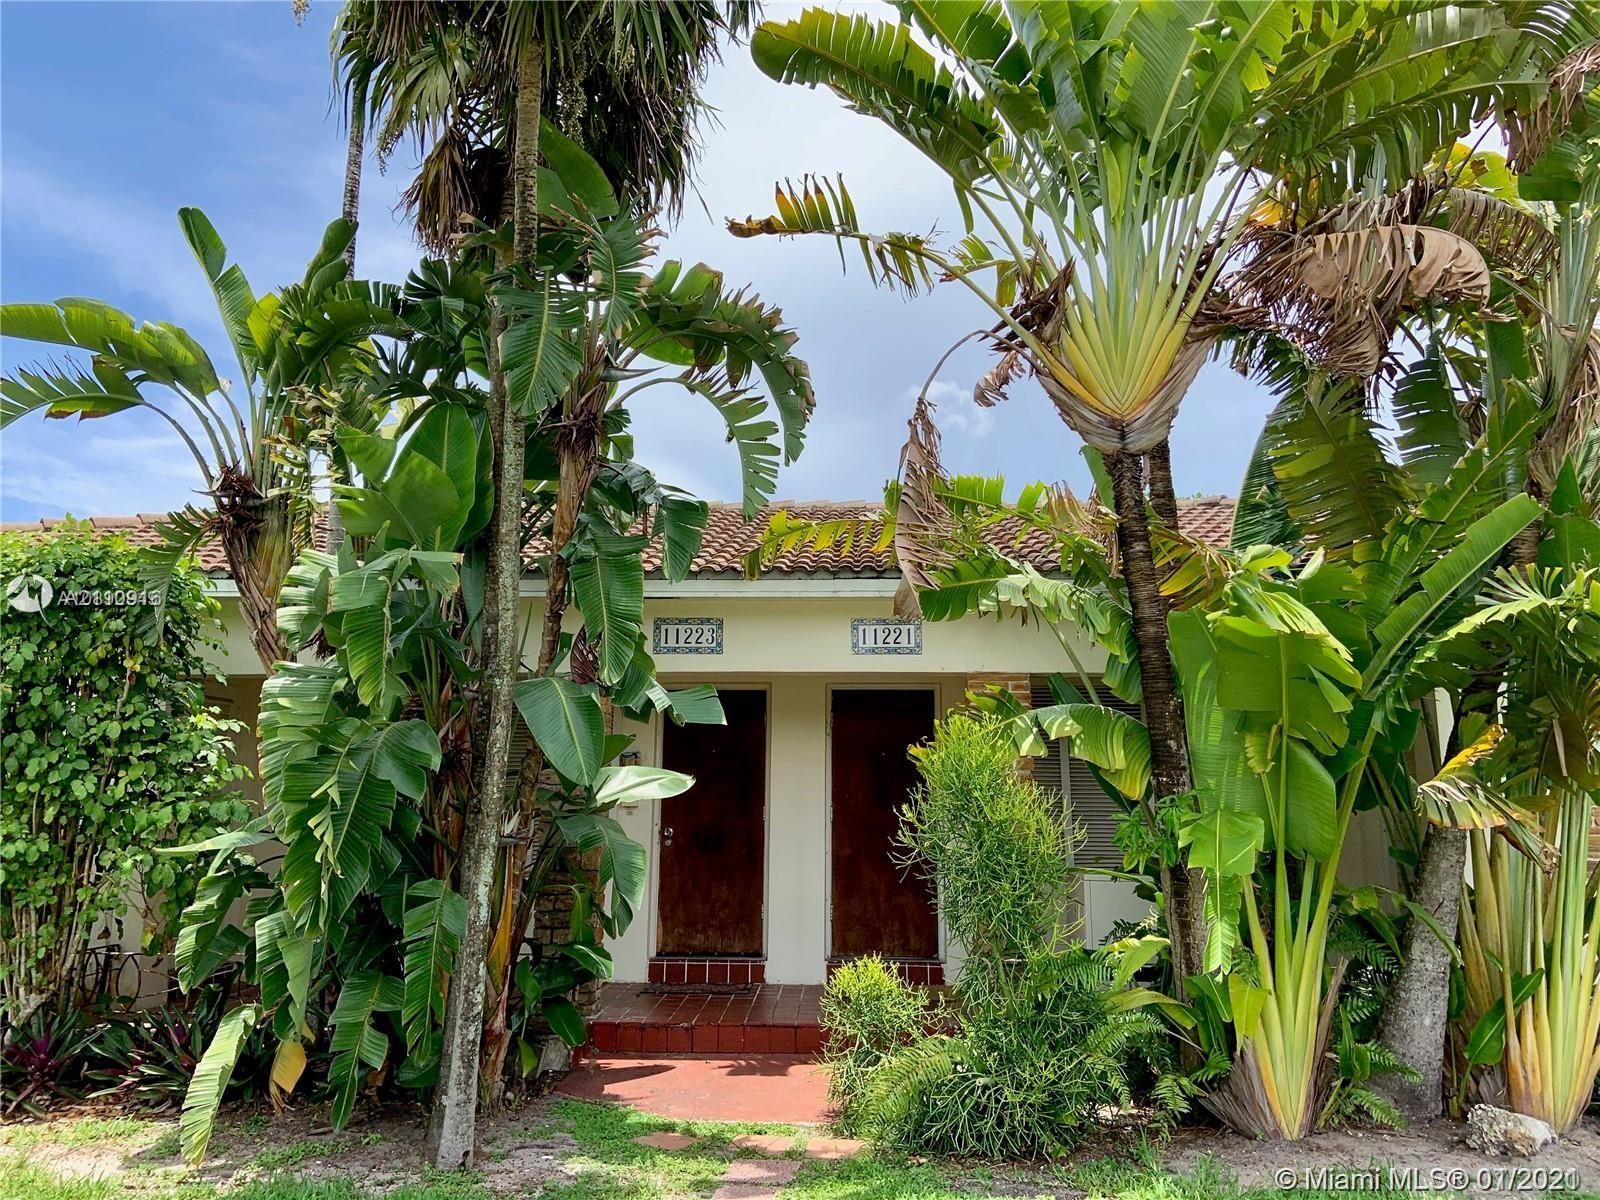 11221 NE 9 CT, one of homes for sale in Miami Shores